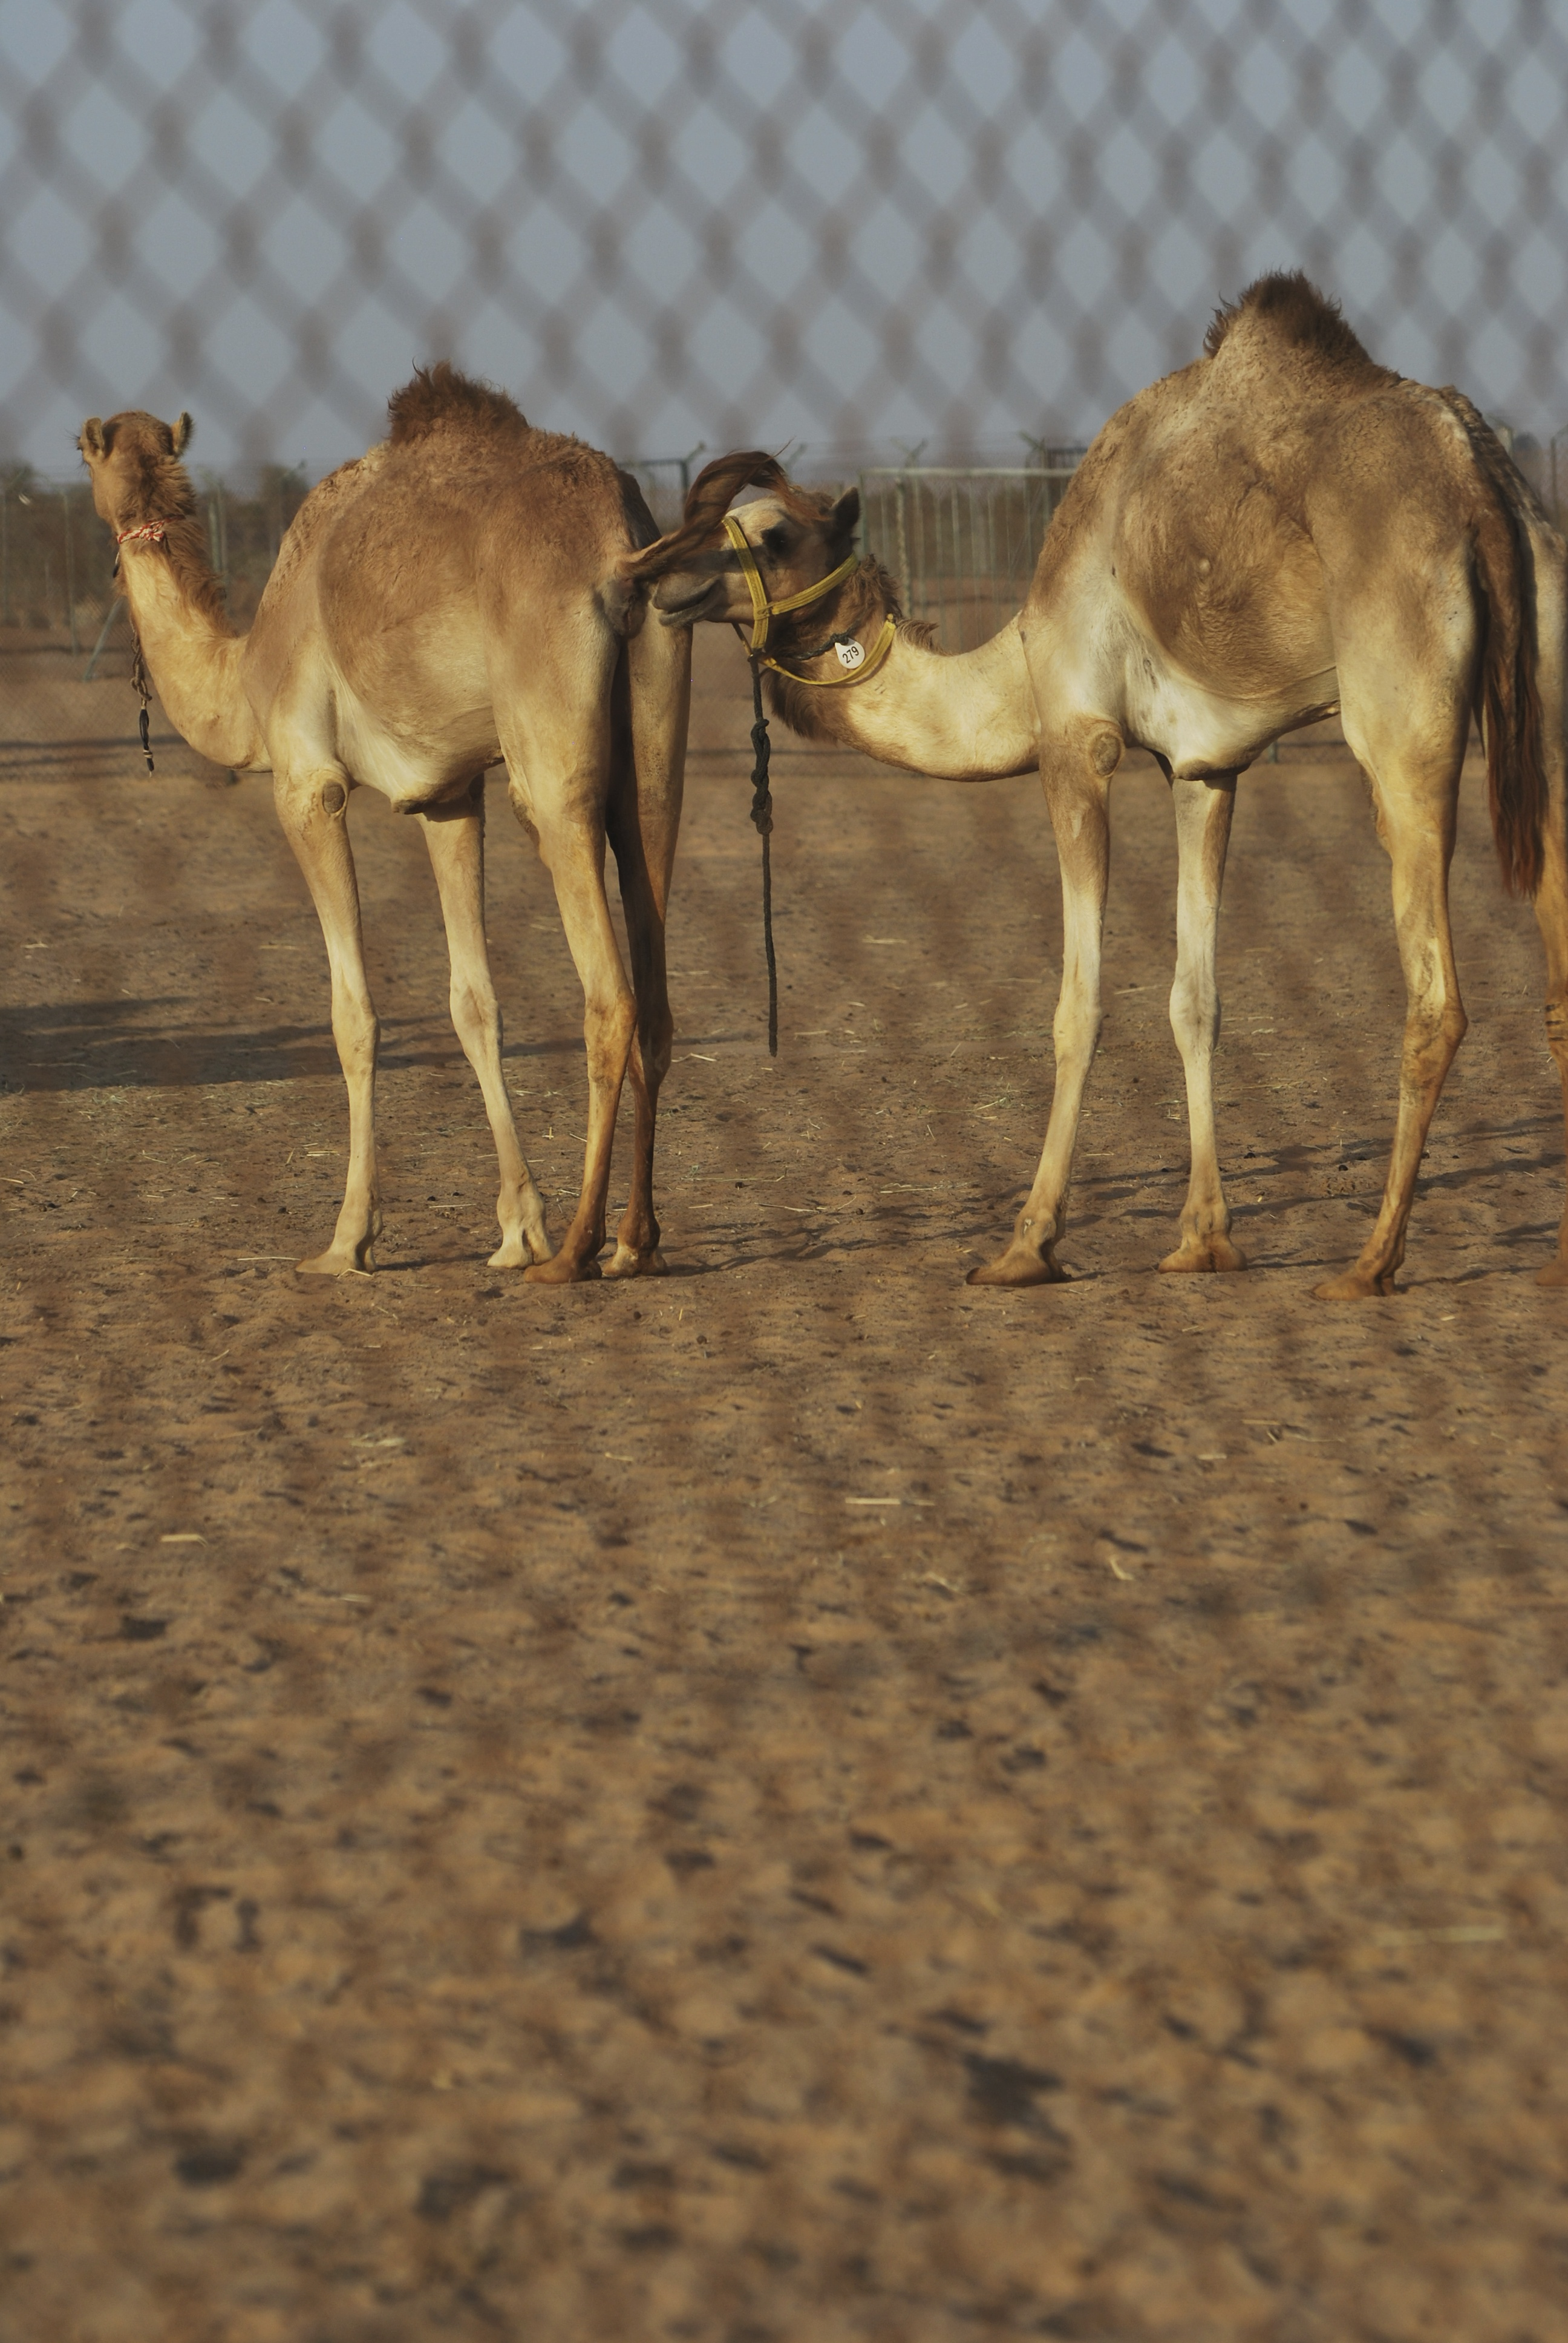 Two camels on a camel farm outside of Dubai